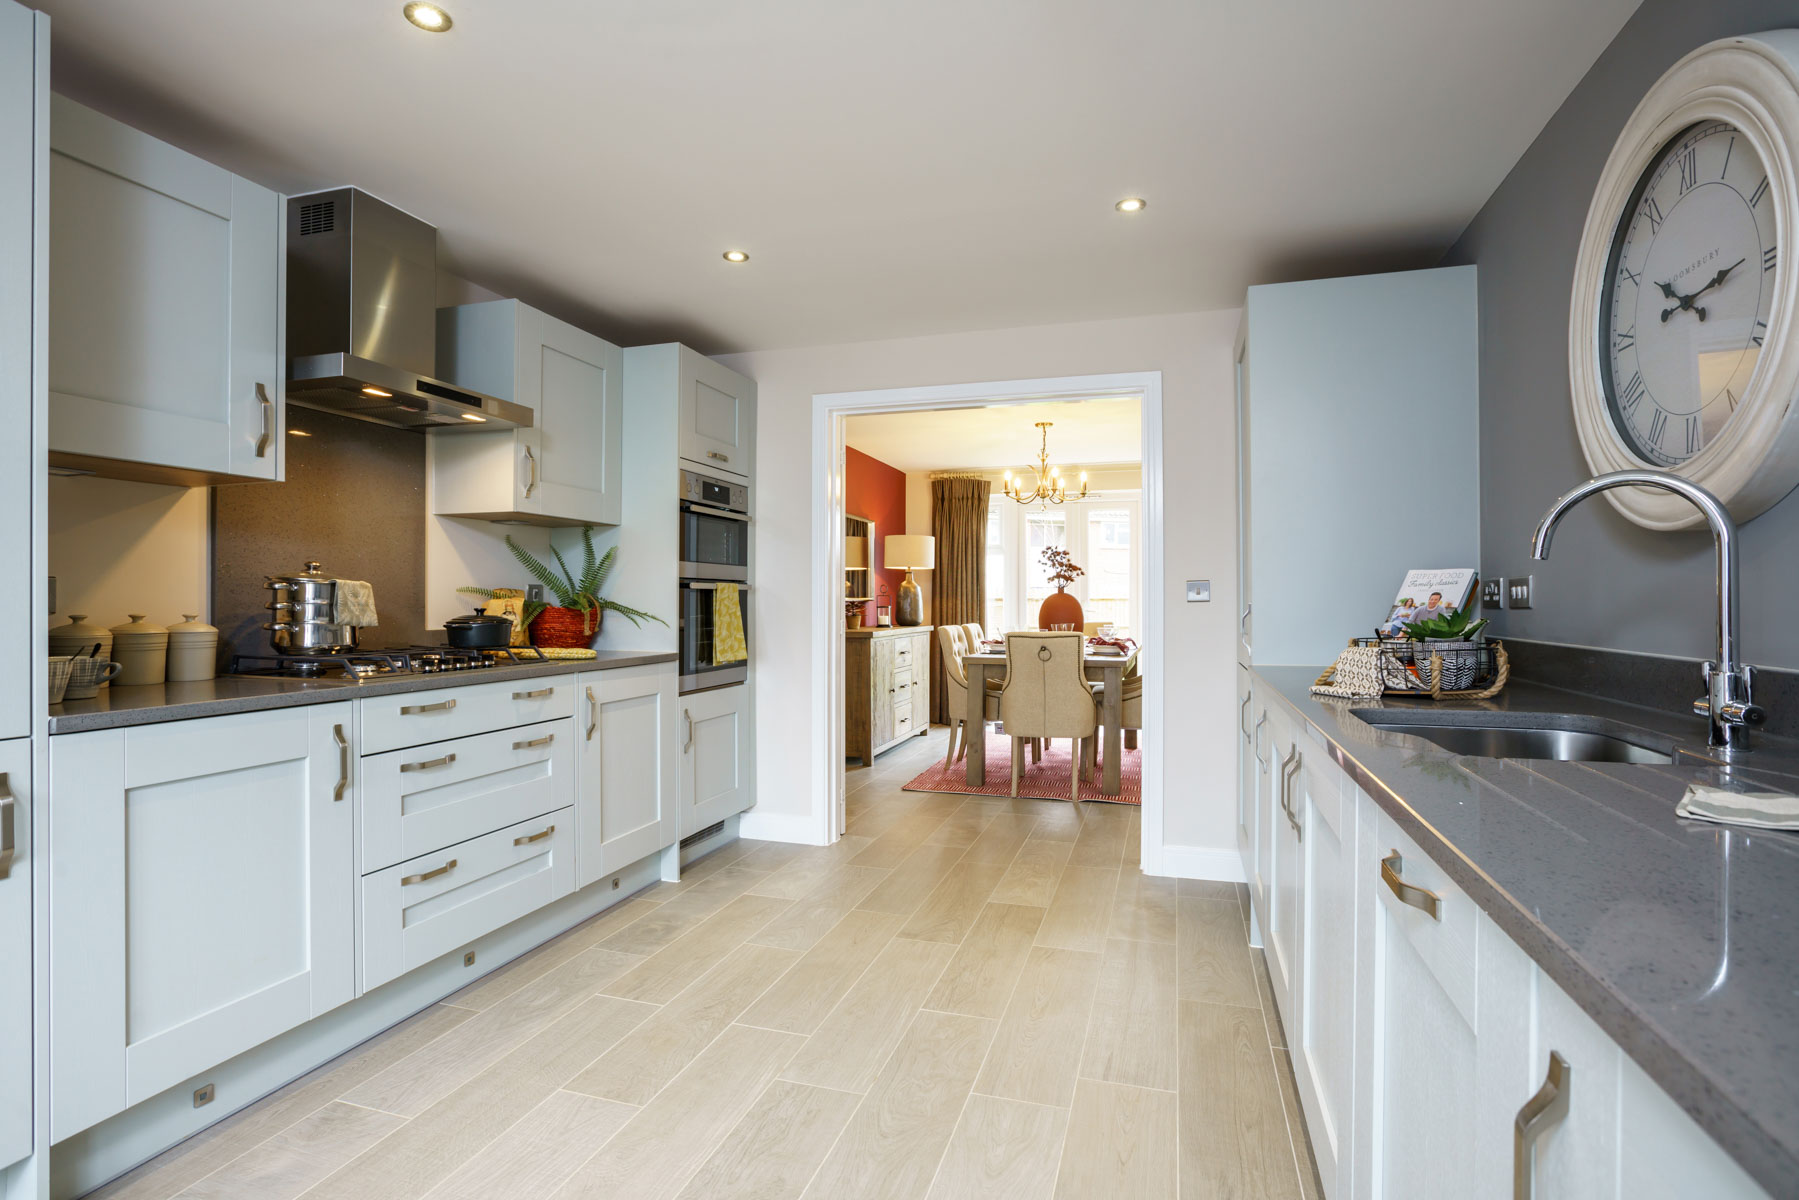 TW Exeter - Copleston Heights - Thornford example kitchen 3